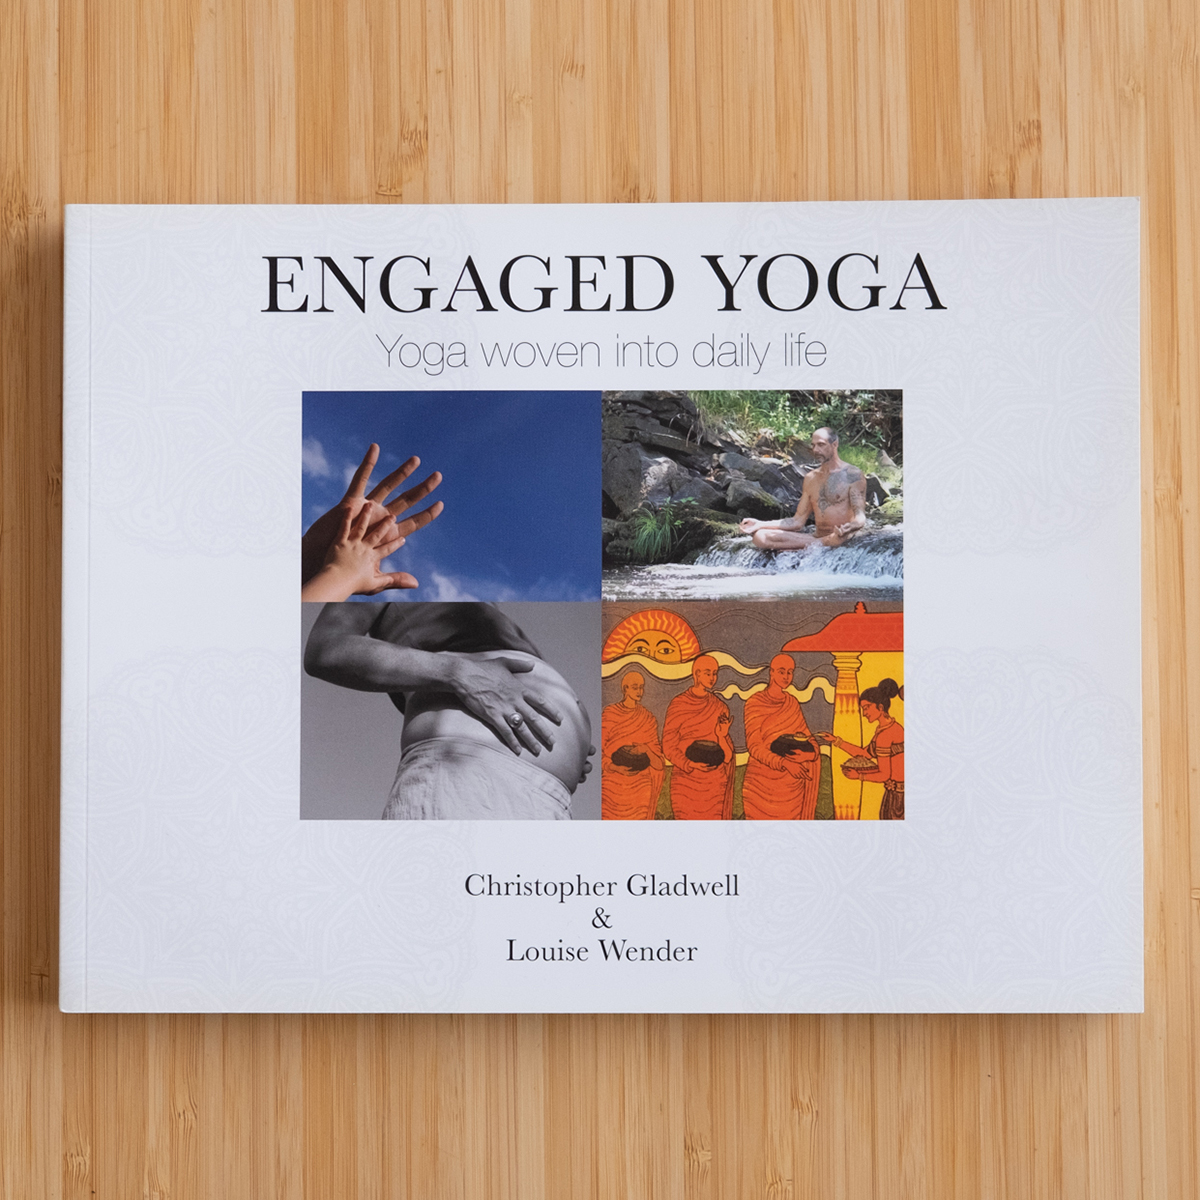 Engaged Yoga